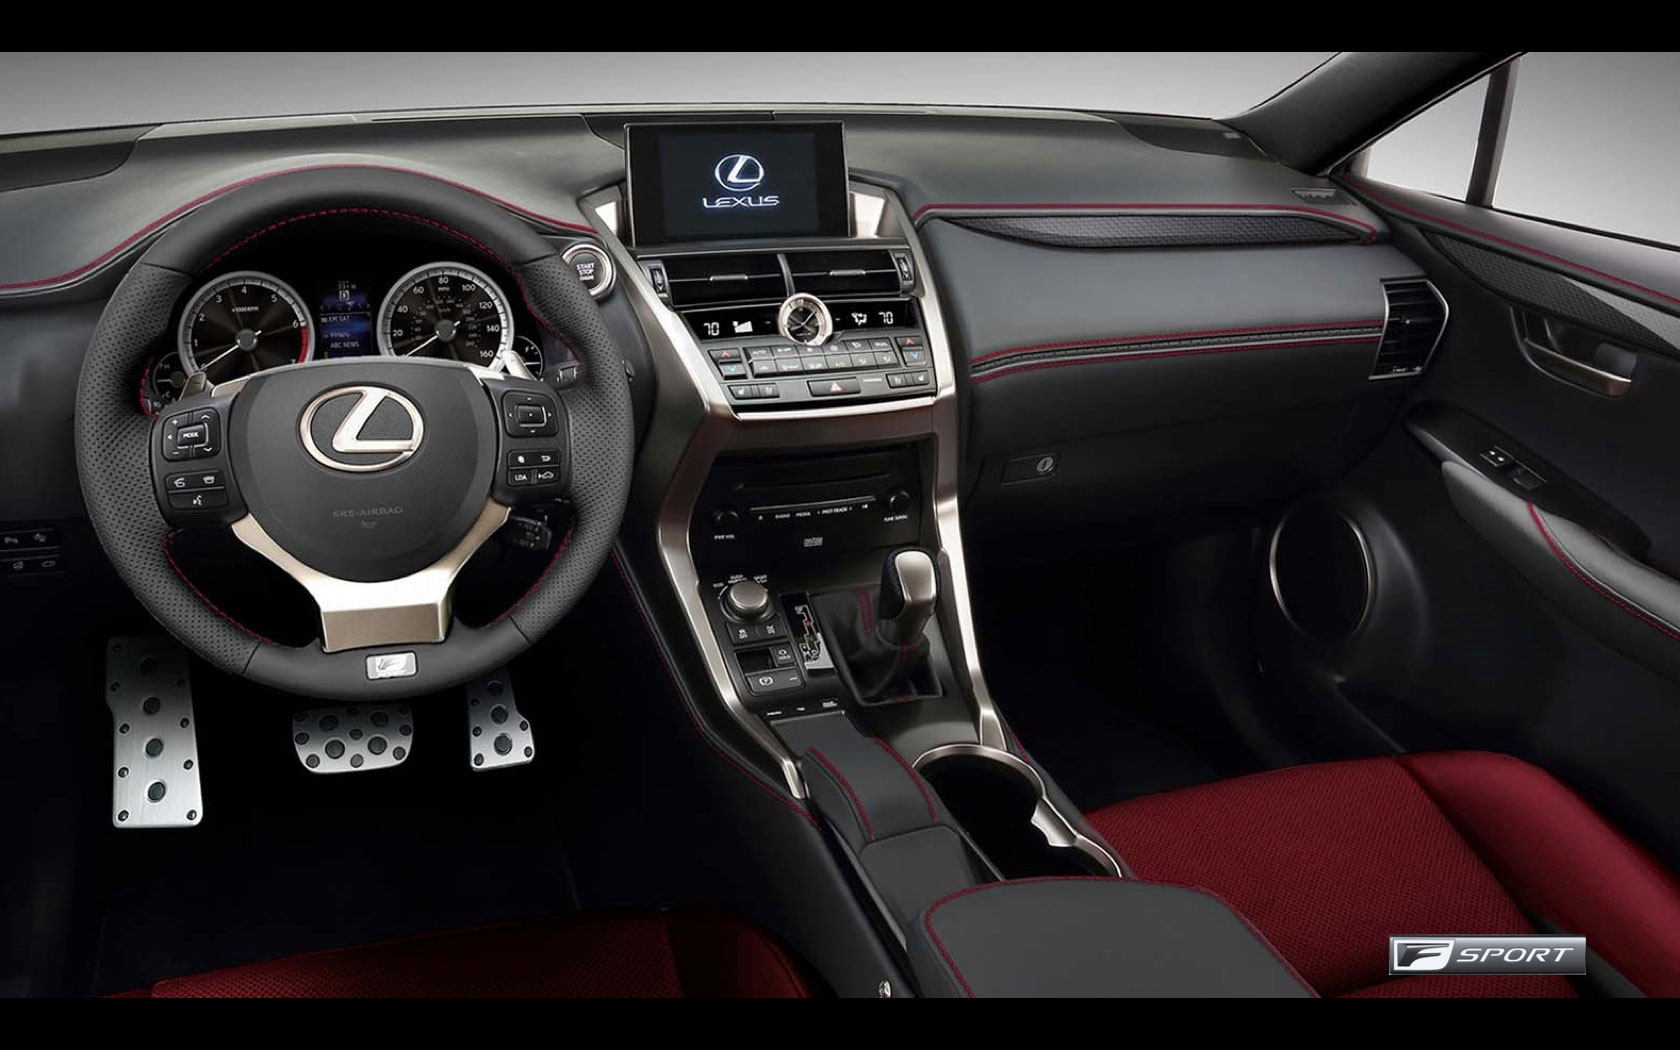 Lexus Isf Red Interior 2012 Lexus Is F Red Leather Interior Lexus Lfa Nrburgring Edition For